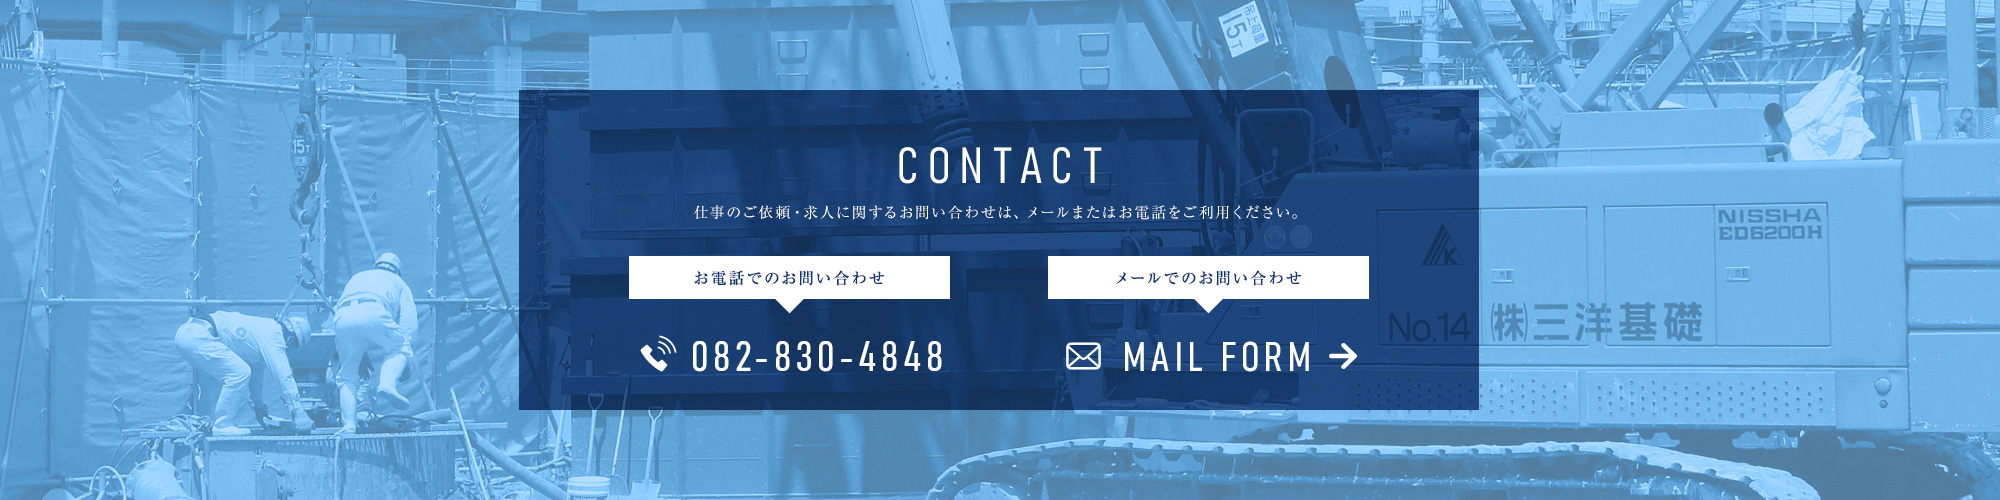 banner_contact_full